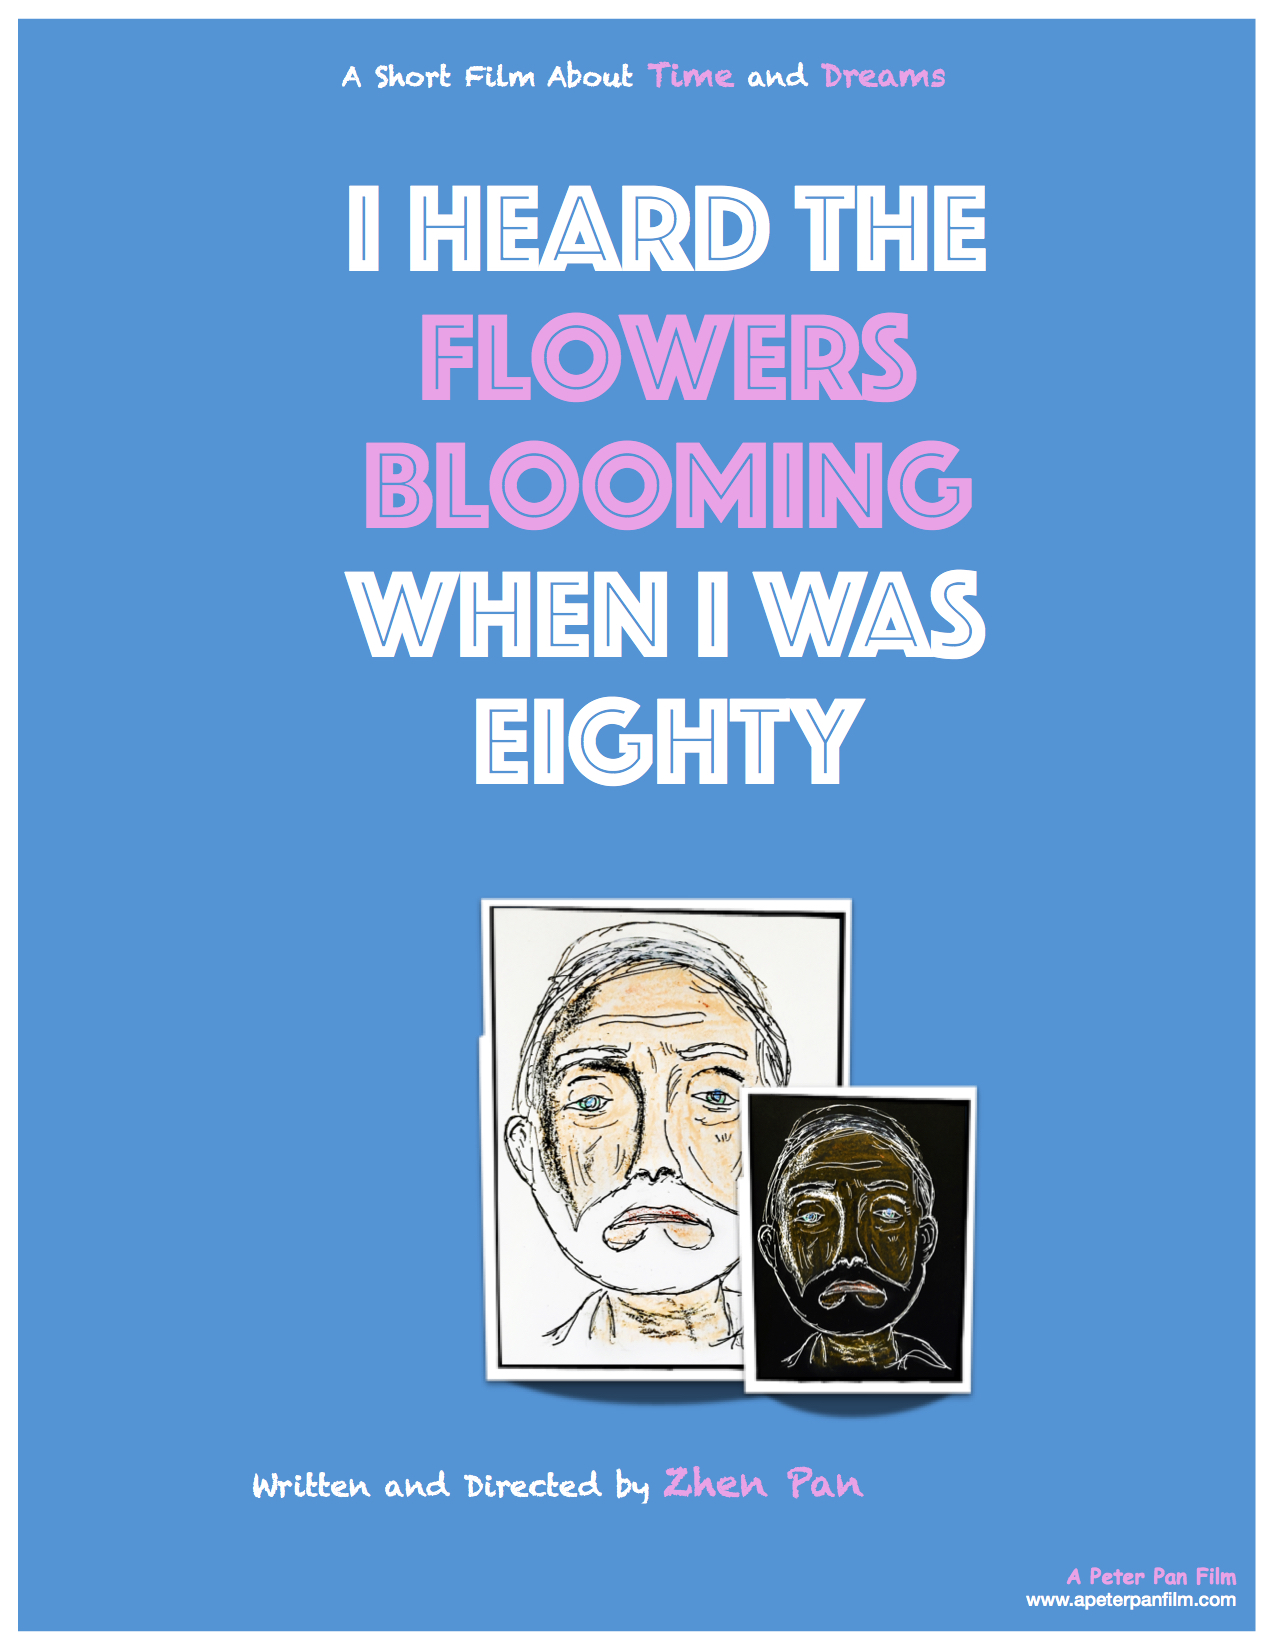 I Heard the Flowers Blooming When I Was Eighty